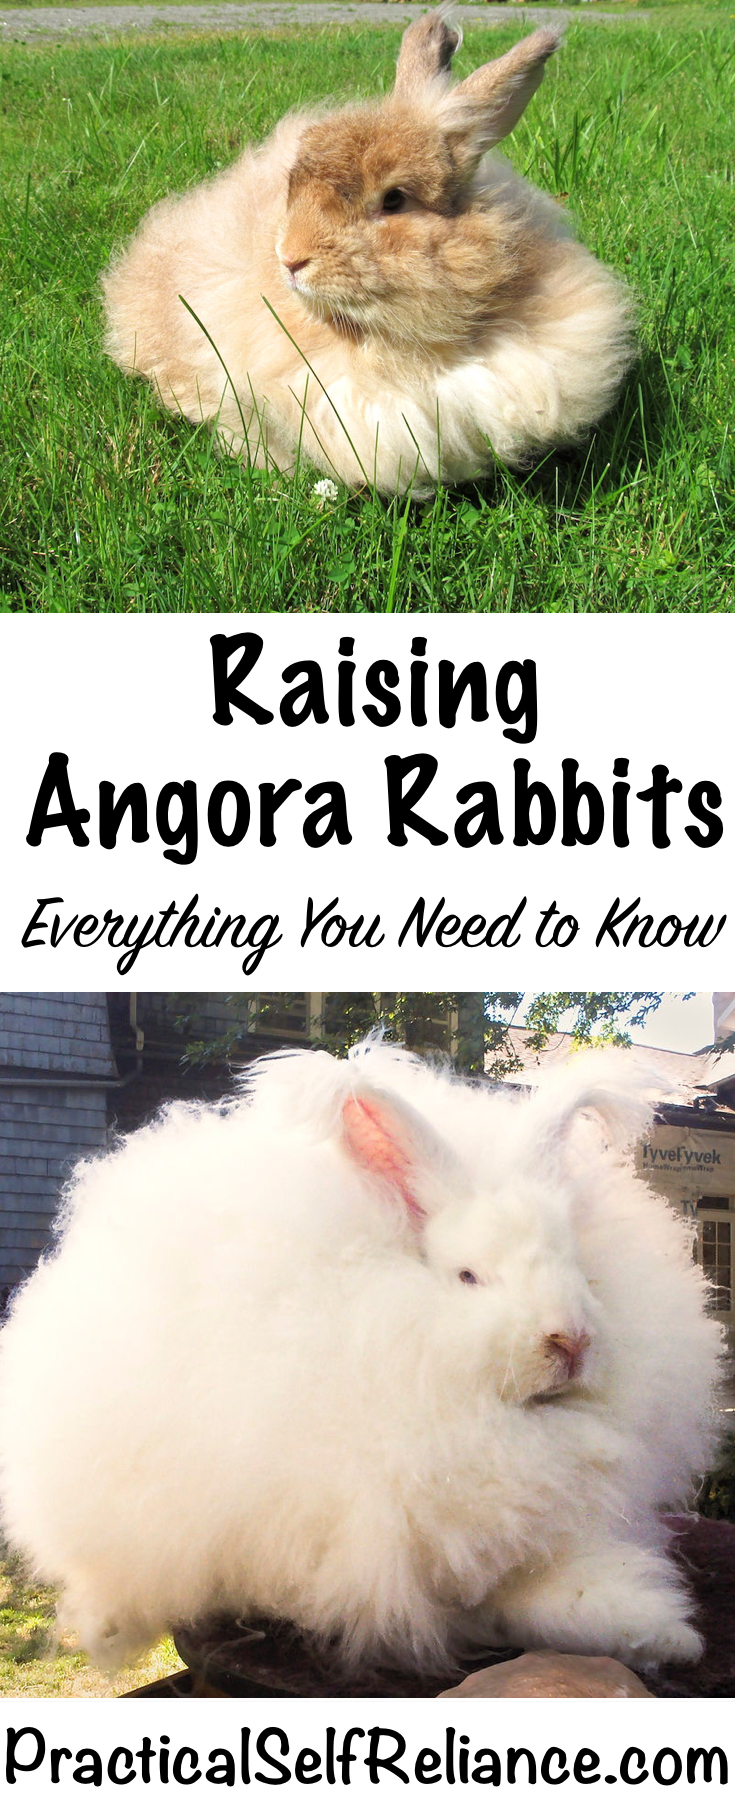 Raising Angora Rabbits for Fun and Fiber